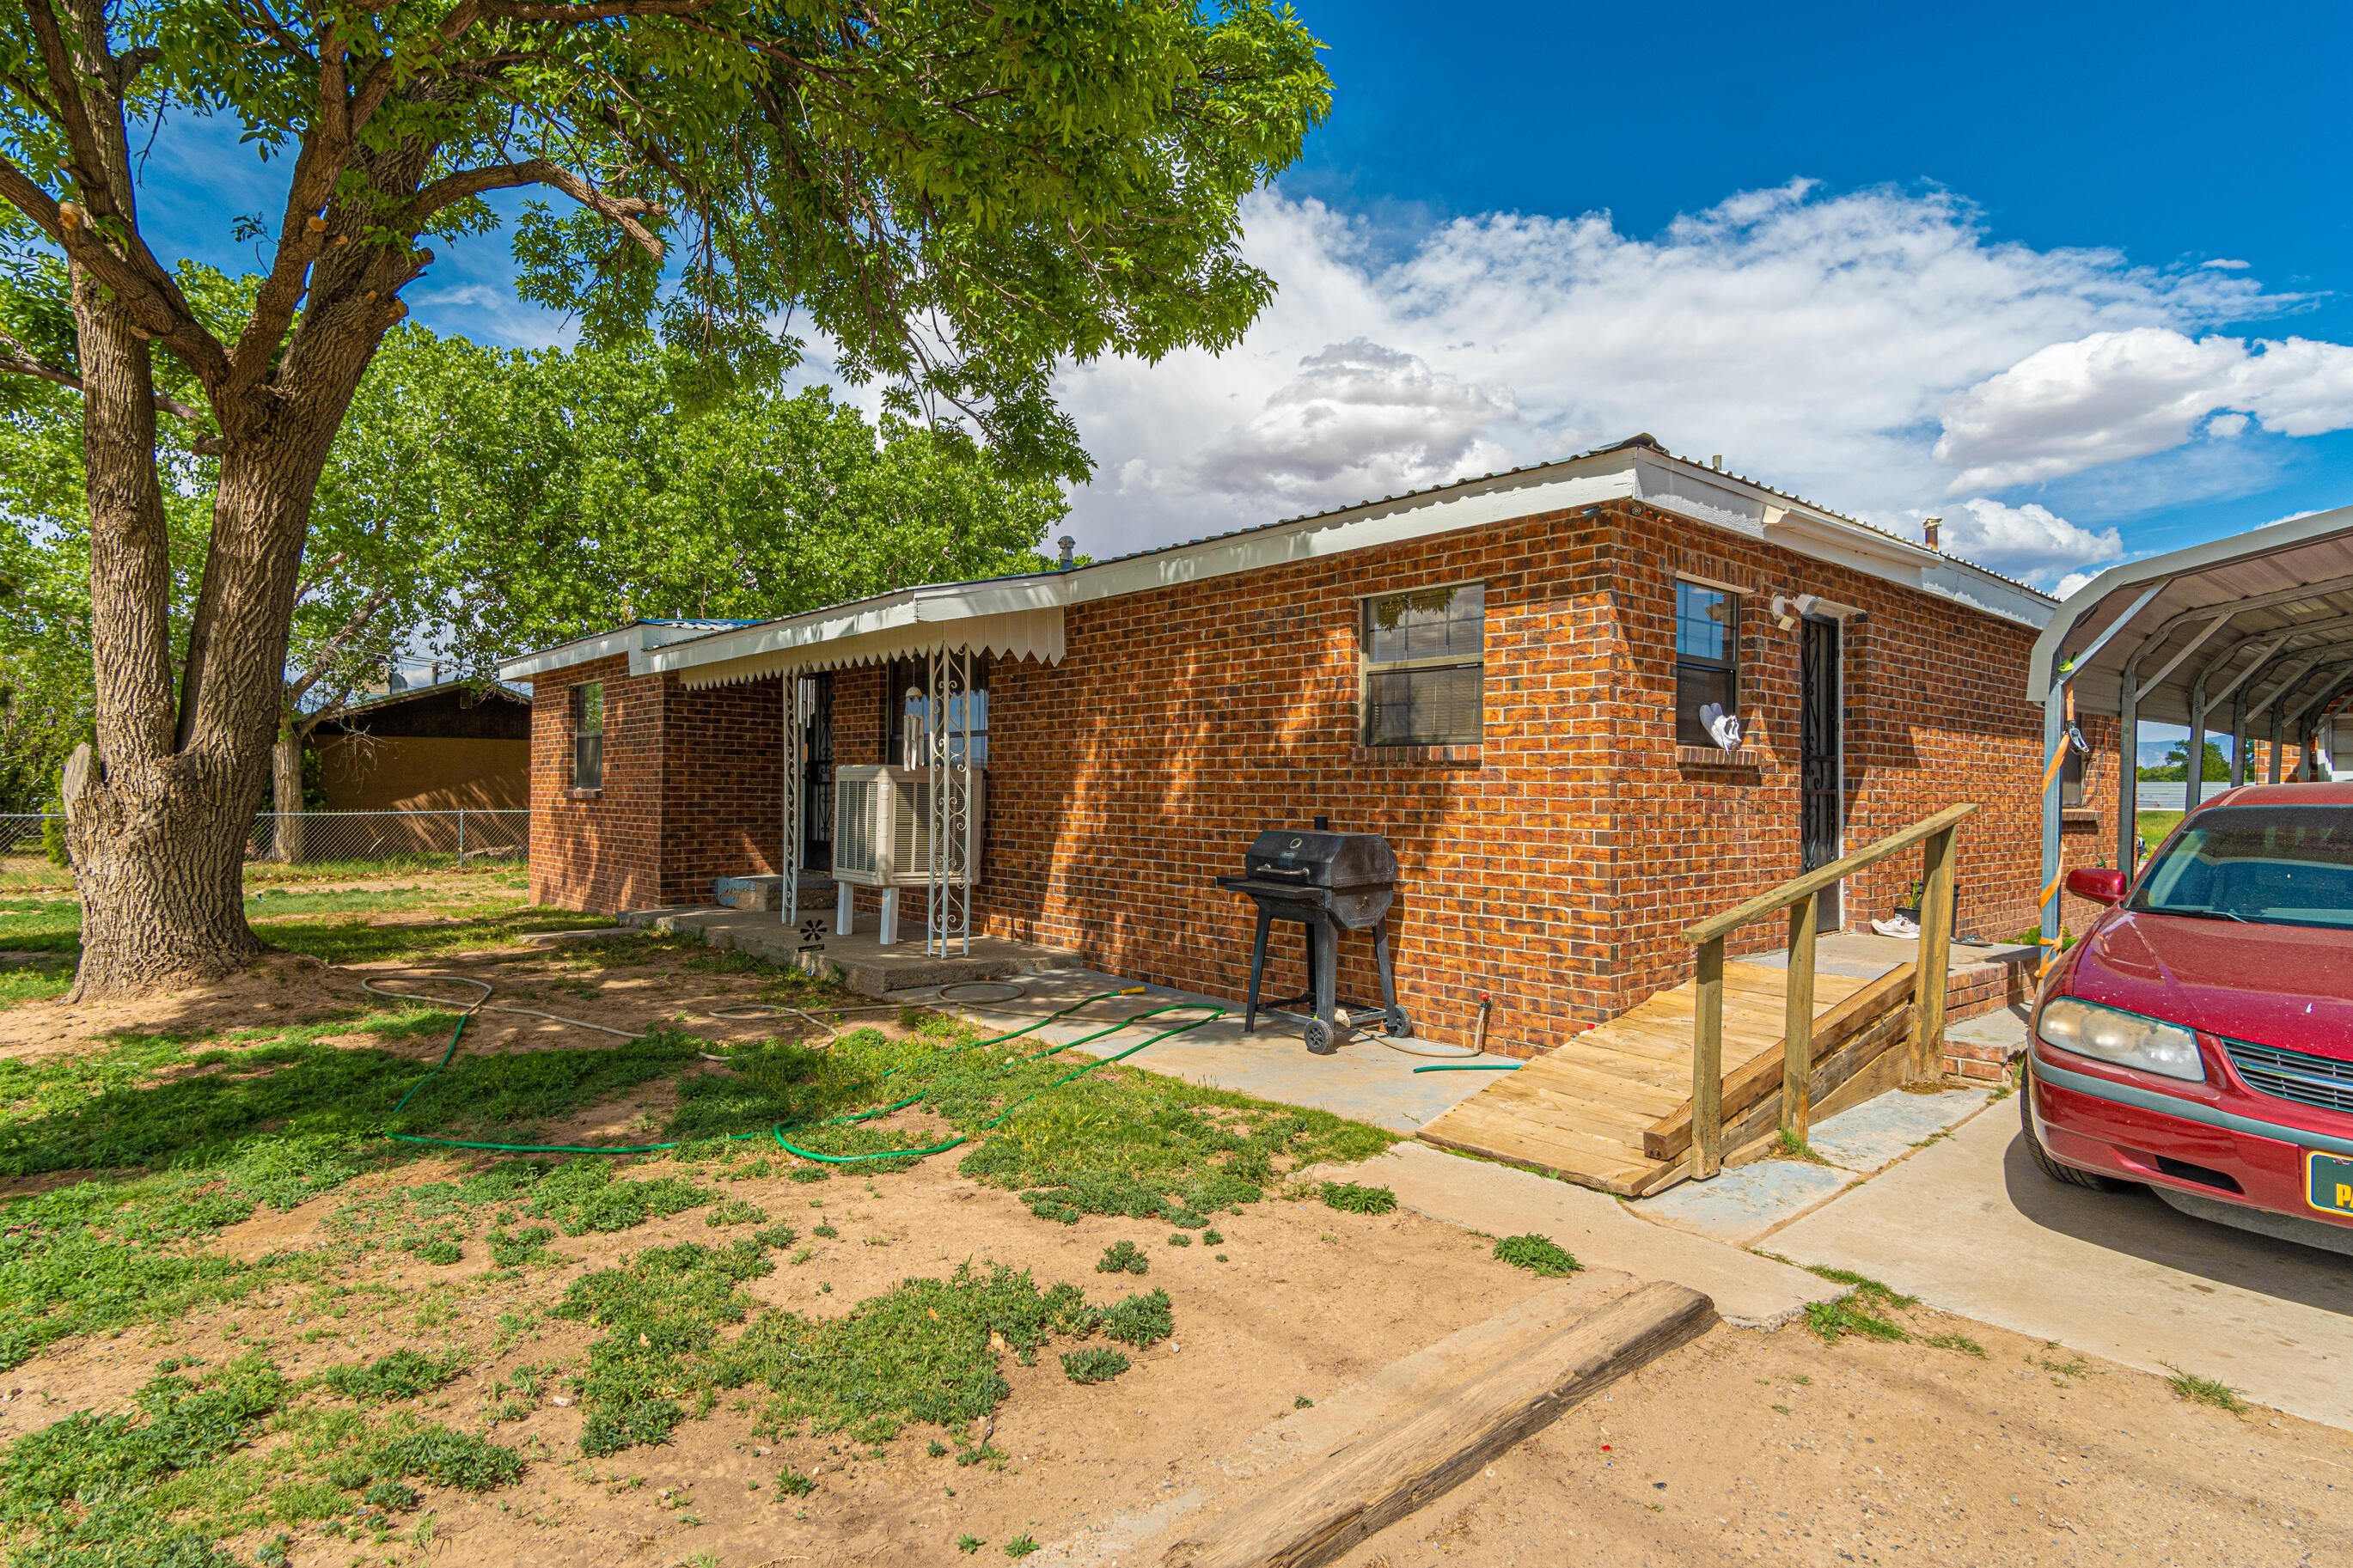 Excellent location with tons of potential & owner will consider Financing!! Come check out this cute home sitting on half an acre.  Three bedroom home with an enclosed patio with an additional 952 Sqft.   Two car garage, pipe fencing, metal roof. This home has the potential to be zoned for commercial use!